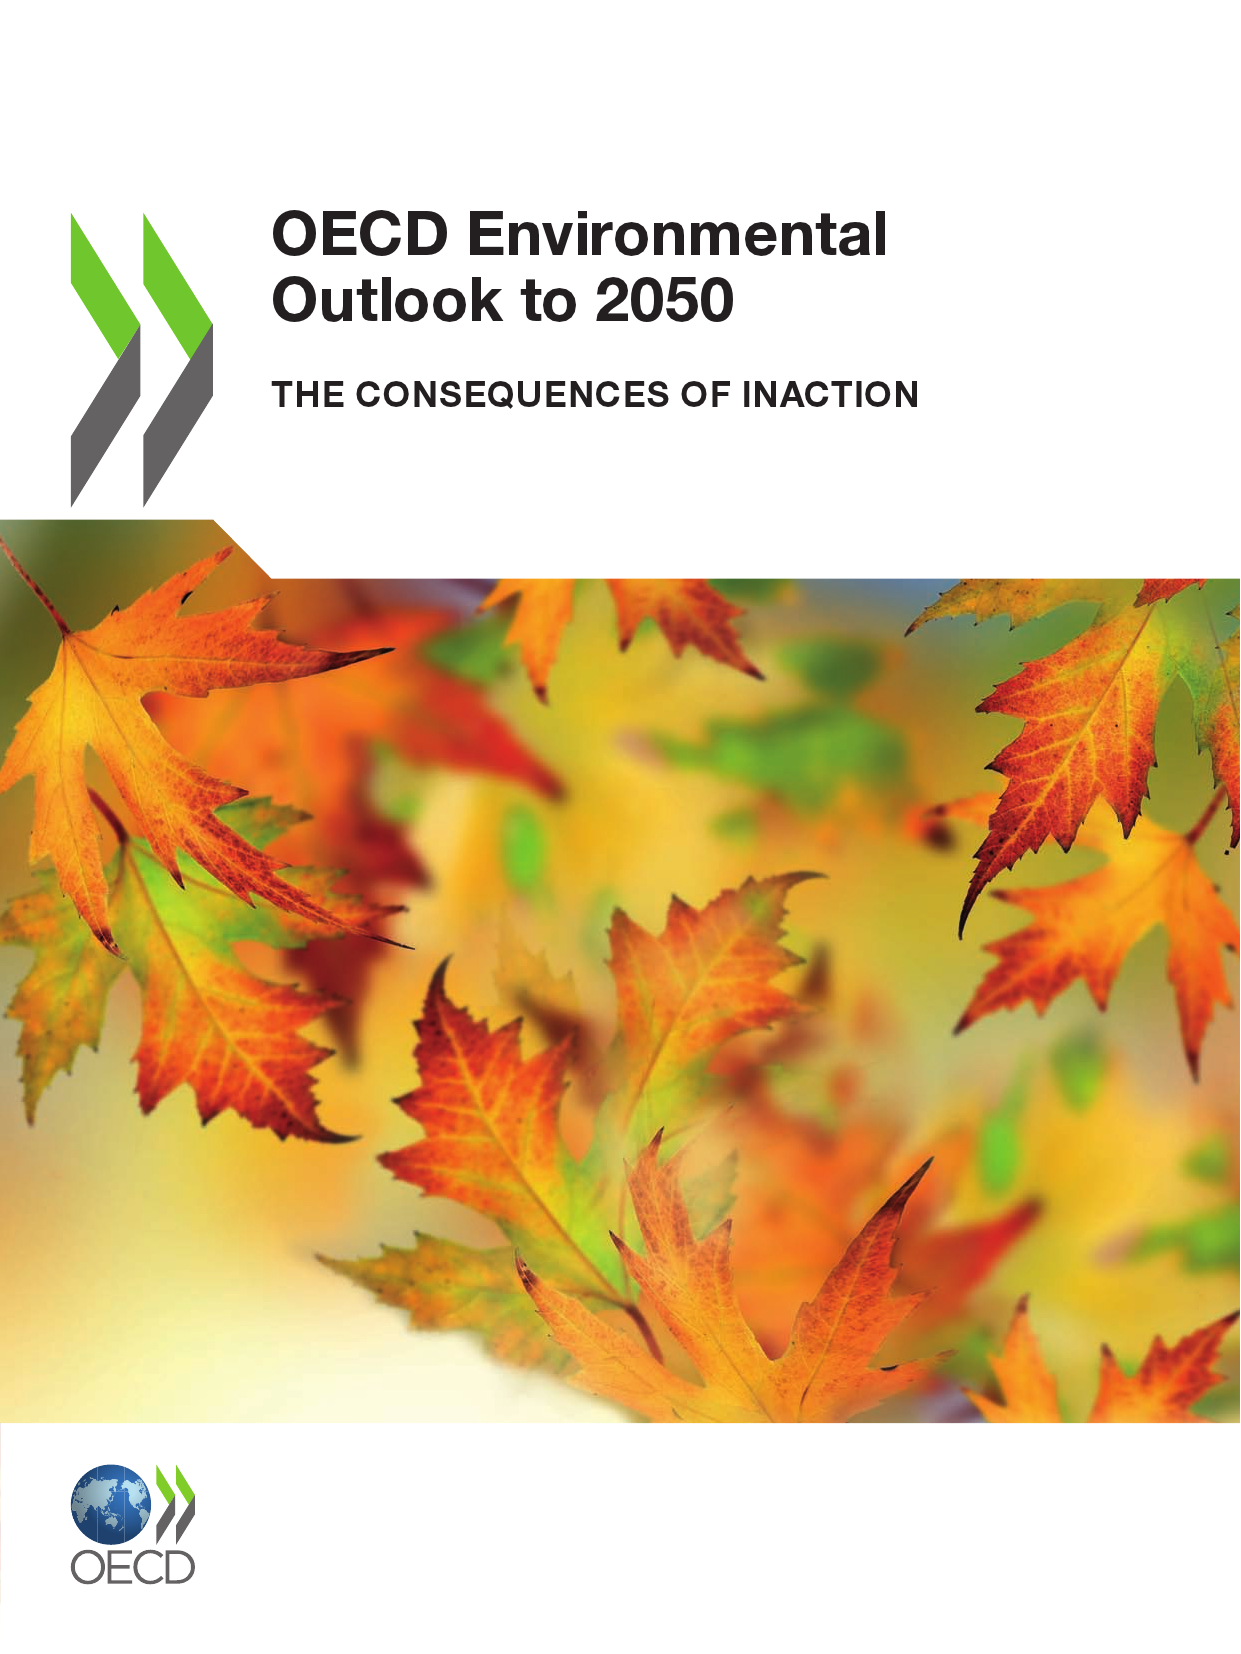 OECD Environmental Outlook to 2050